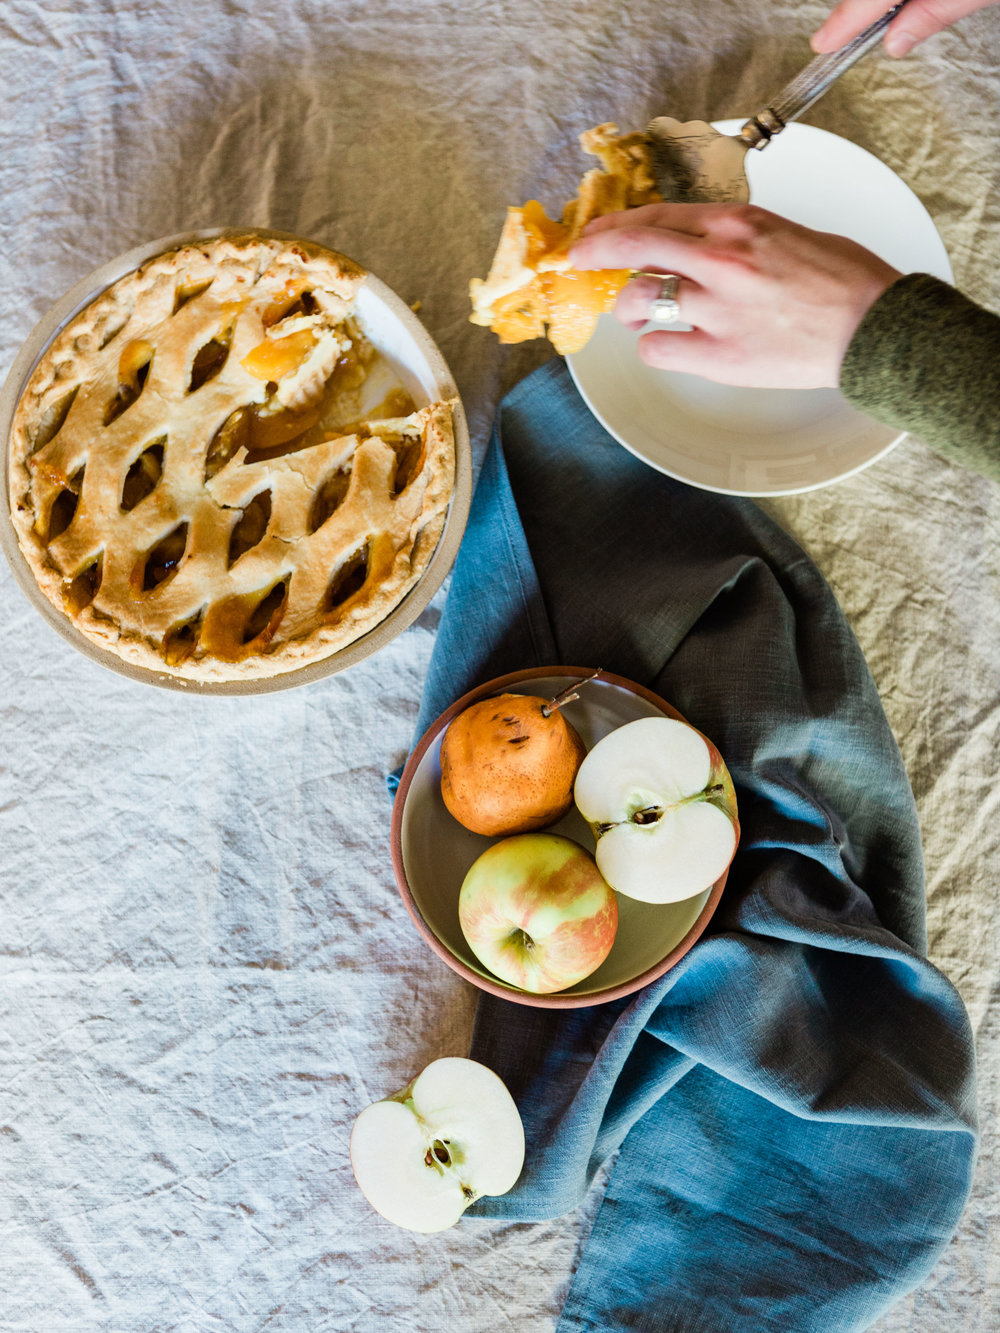 Simple and beautiful baking flat lay with peach and apple pie